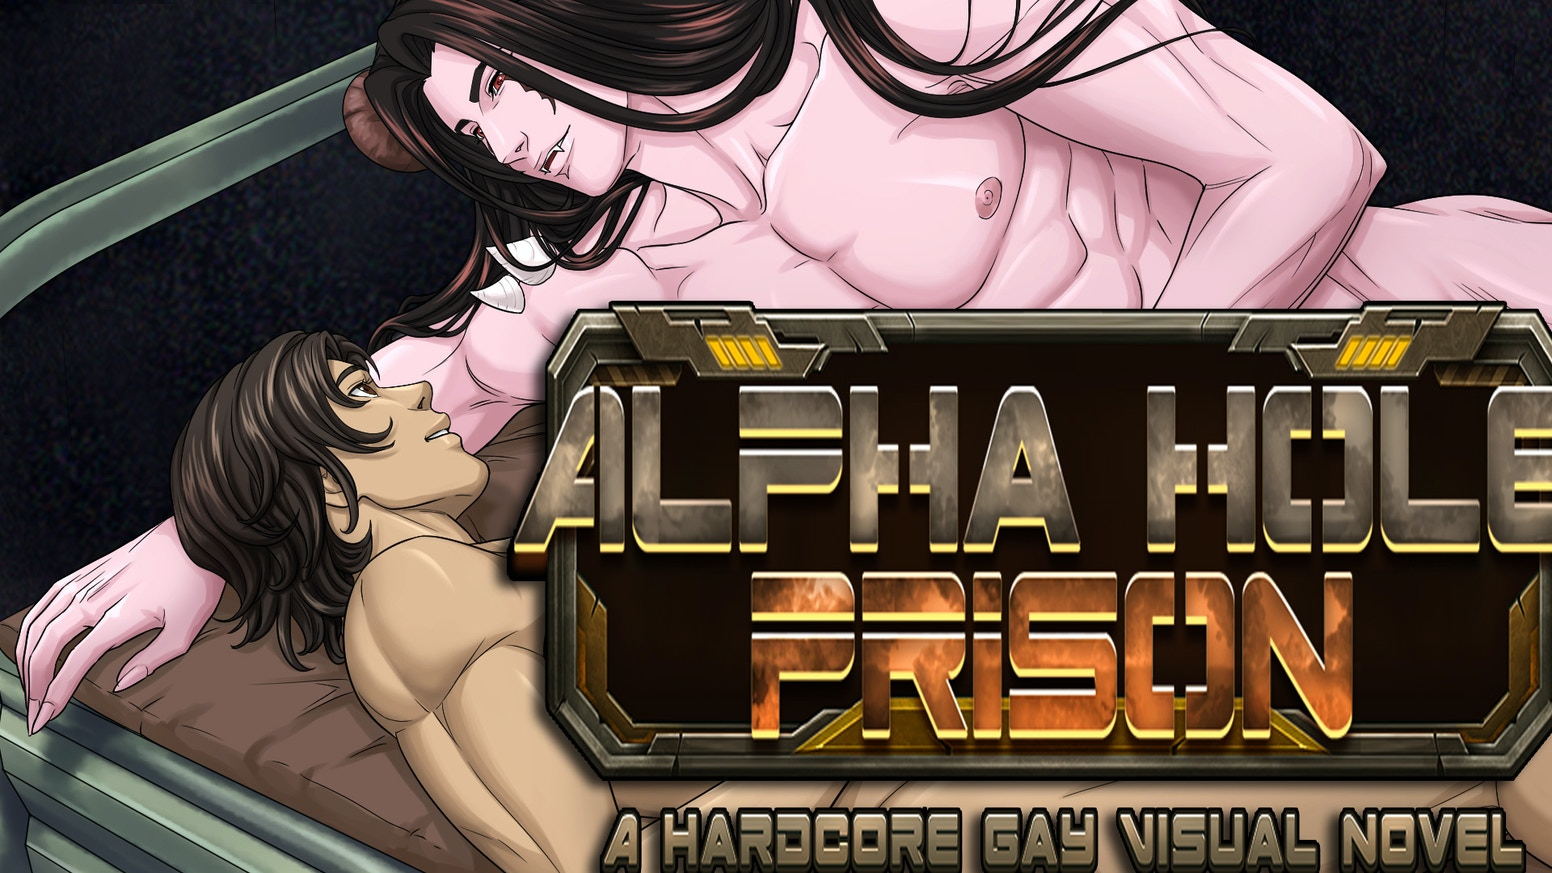 Earthling Miguel gets life in Alpha Hole--a notorious space prison! He must use his charms to convince a strong inmate to protect him.